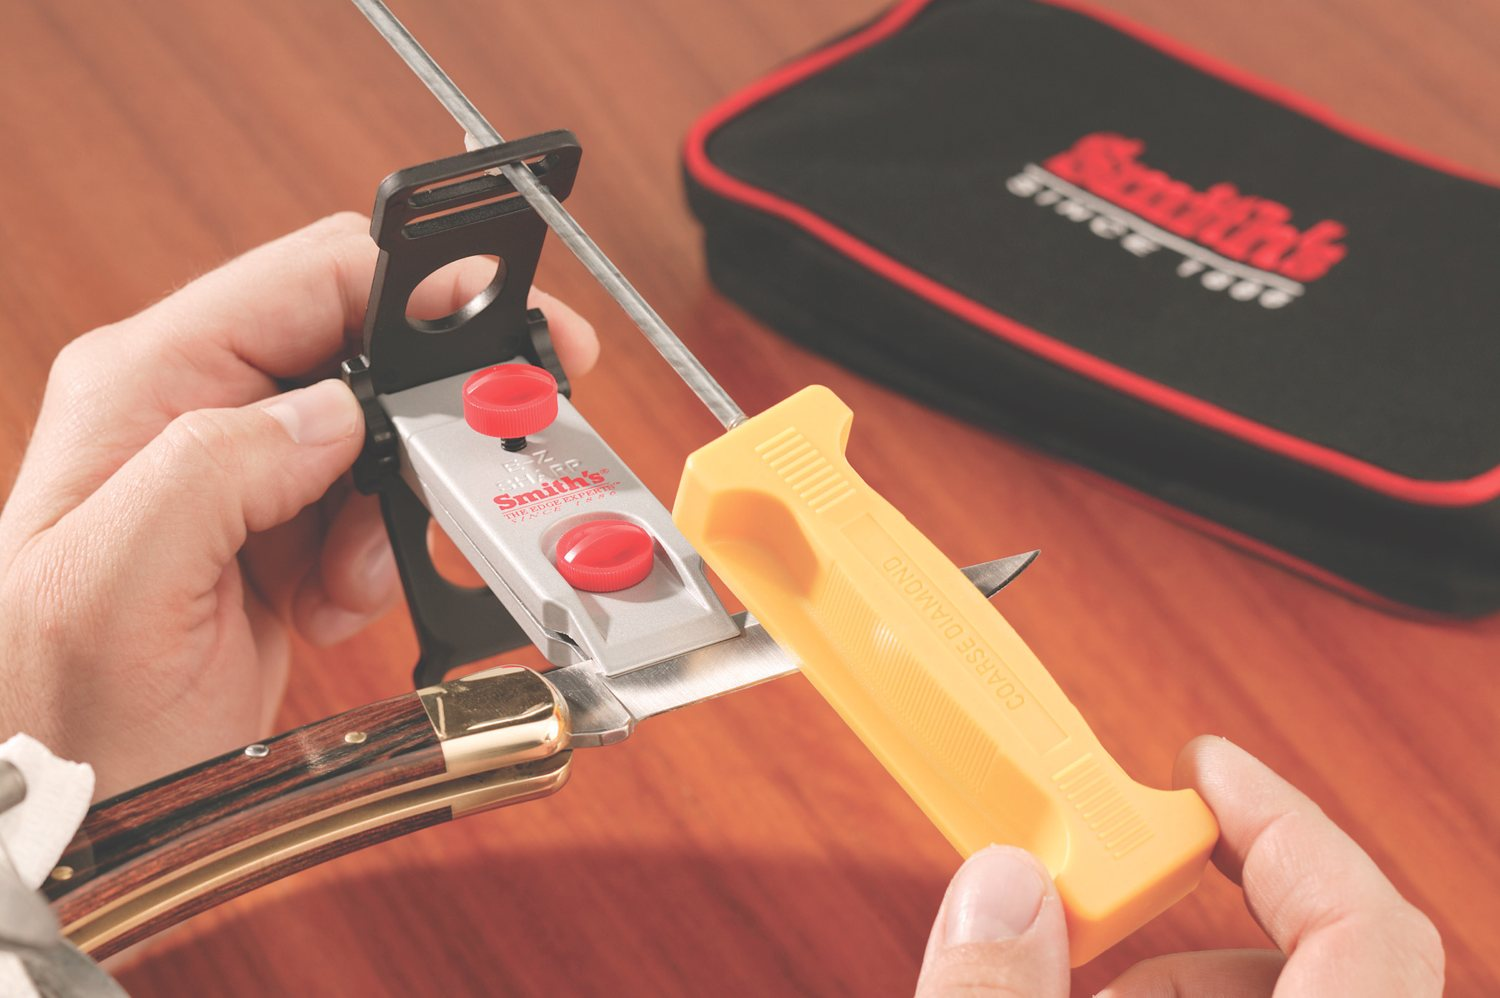 dfpk use - Knife Sharpeners